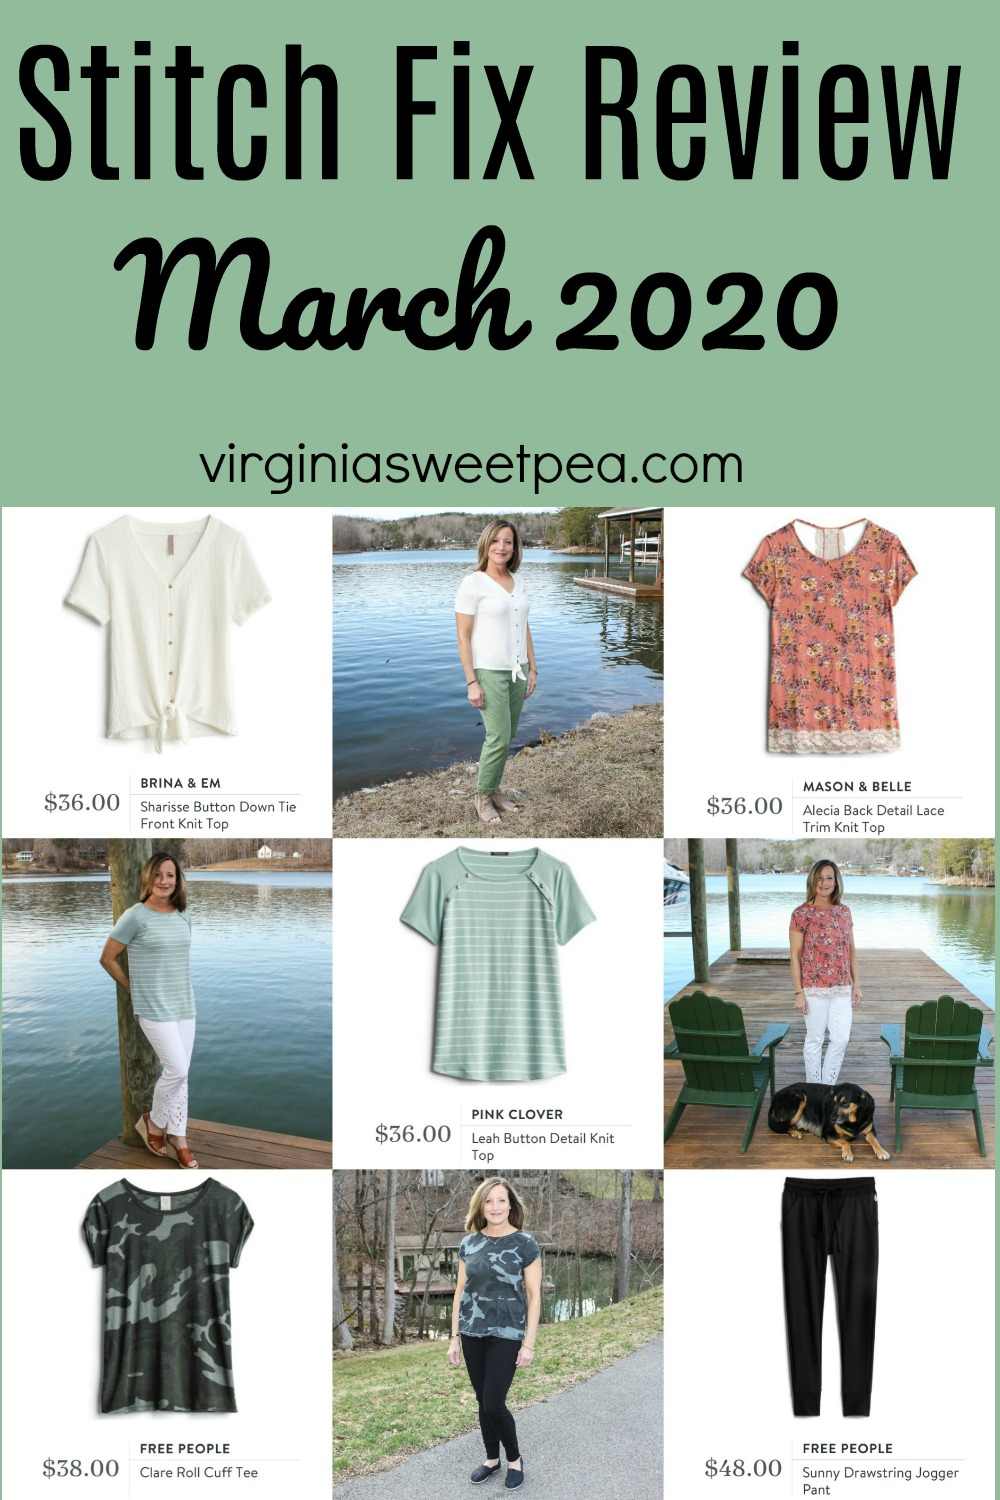 Stitch Fix Review for March 2020 - Fix #79 - See the styles sent for me to try for March.  #stitchfix #stitchfixreview #stitchfixstyle via @spaula